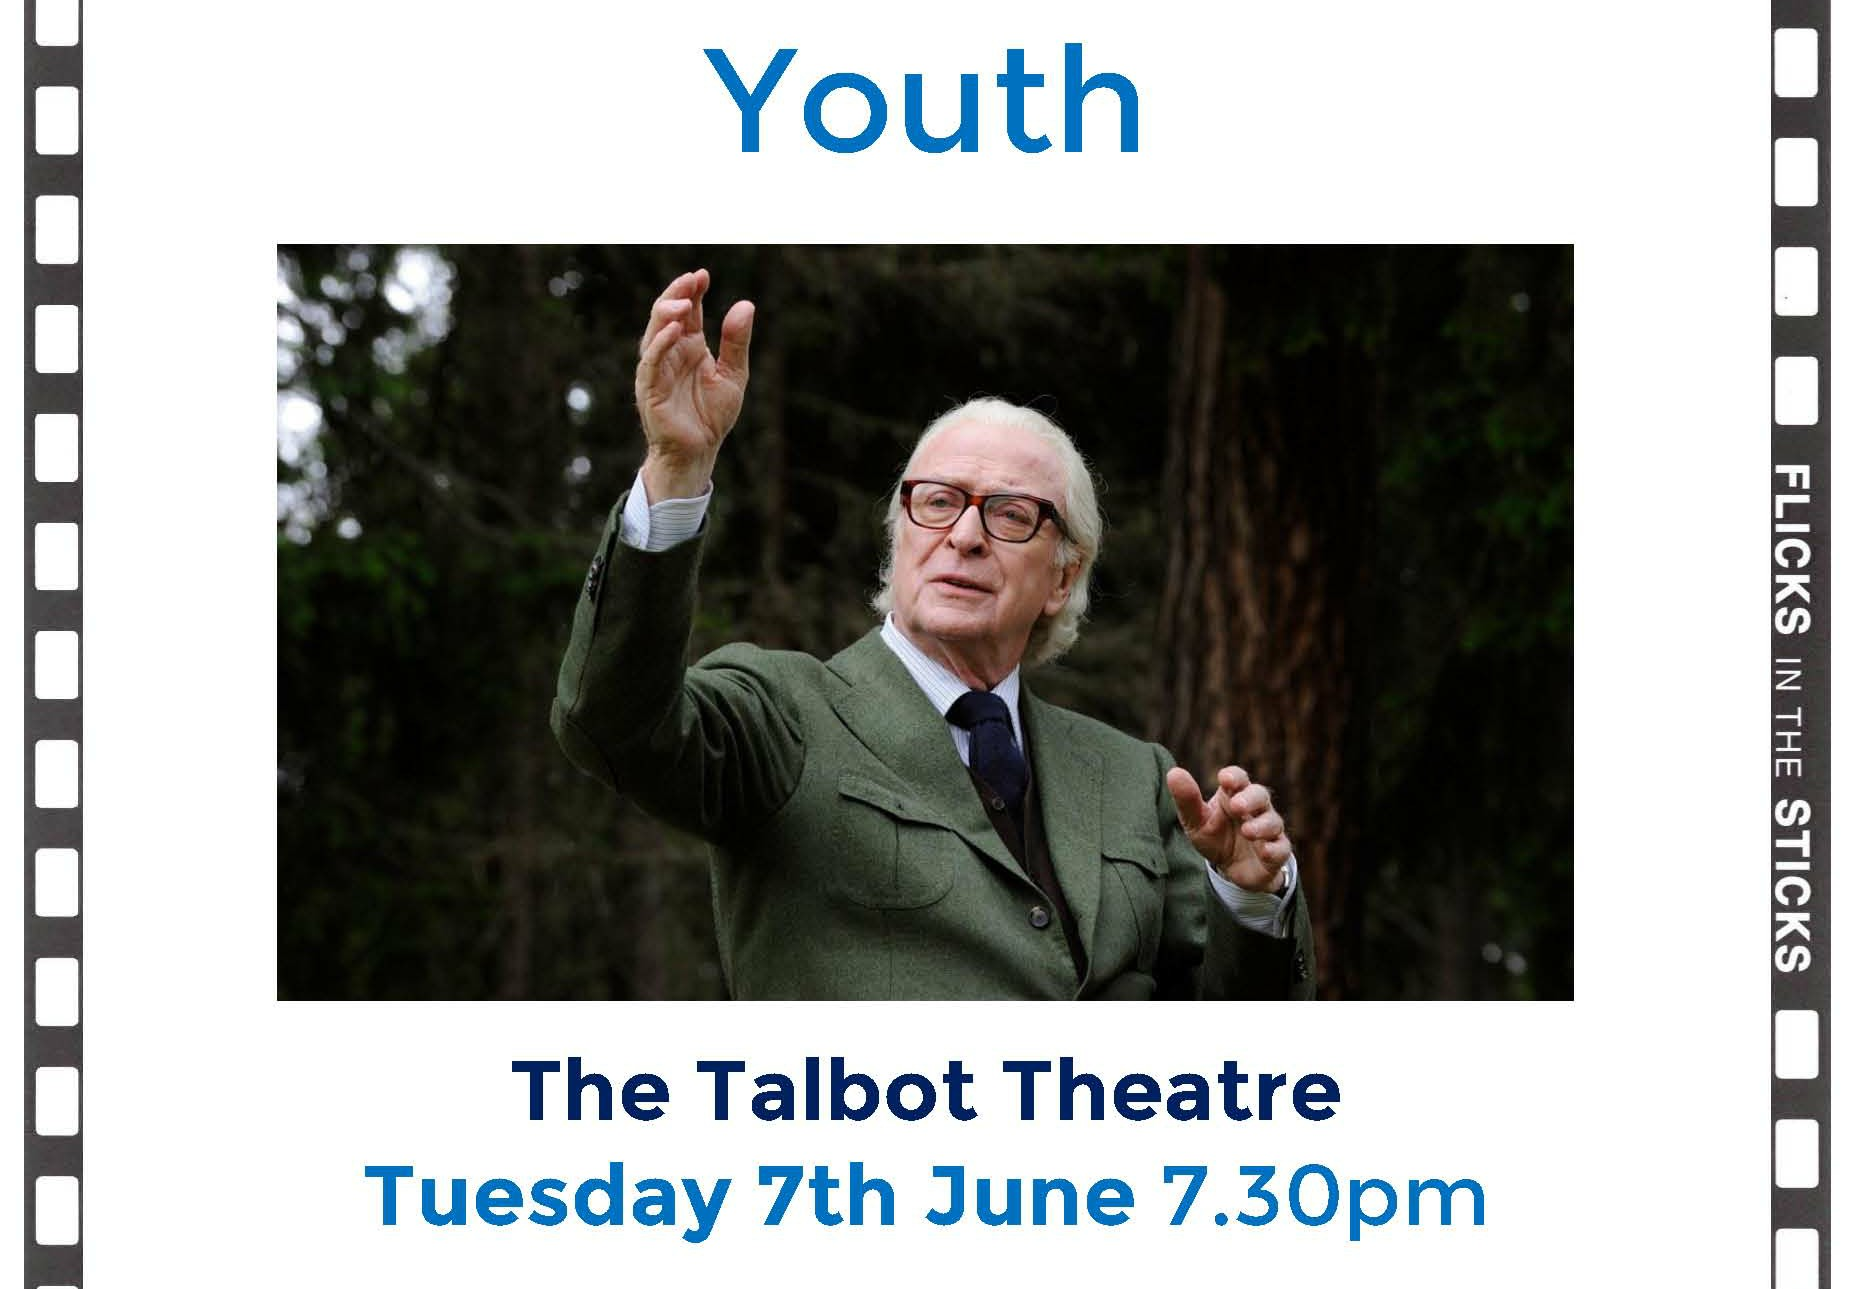 Tuesday 7th June - The Talbot Theatre